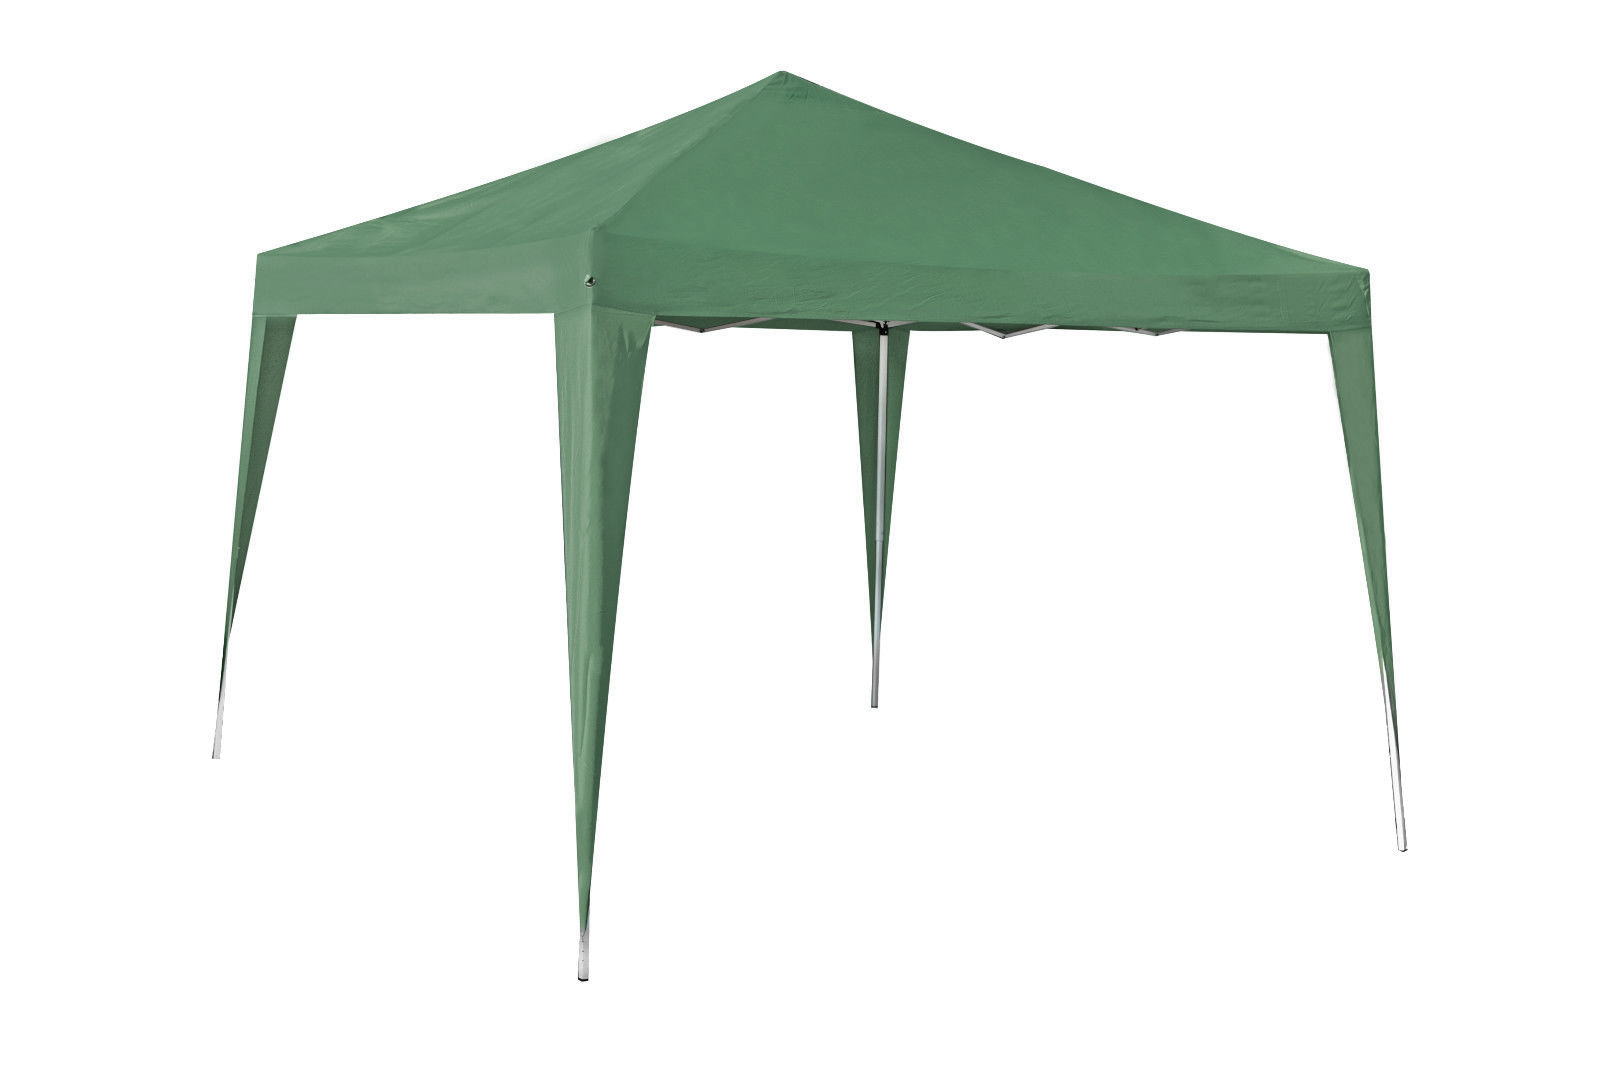 Pvc gazebo marquee canopy awning shelter garden patio bbq tent